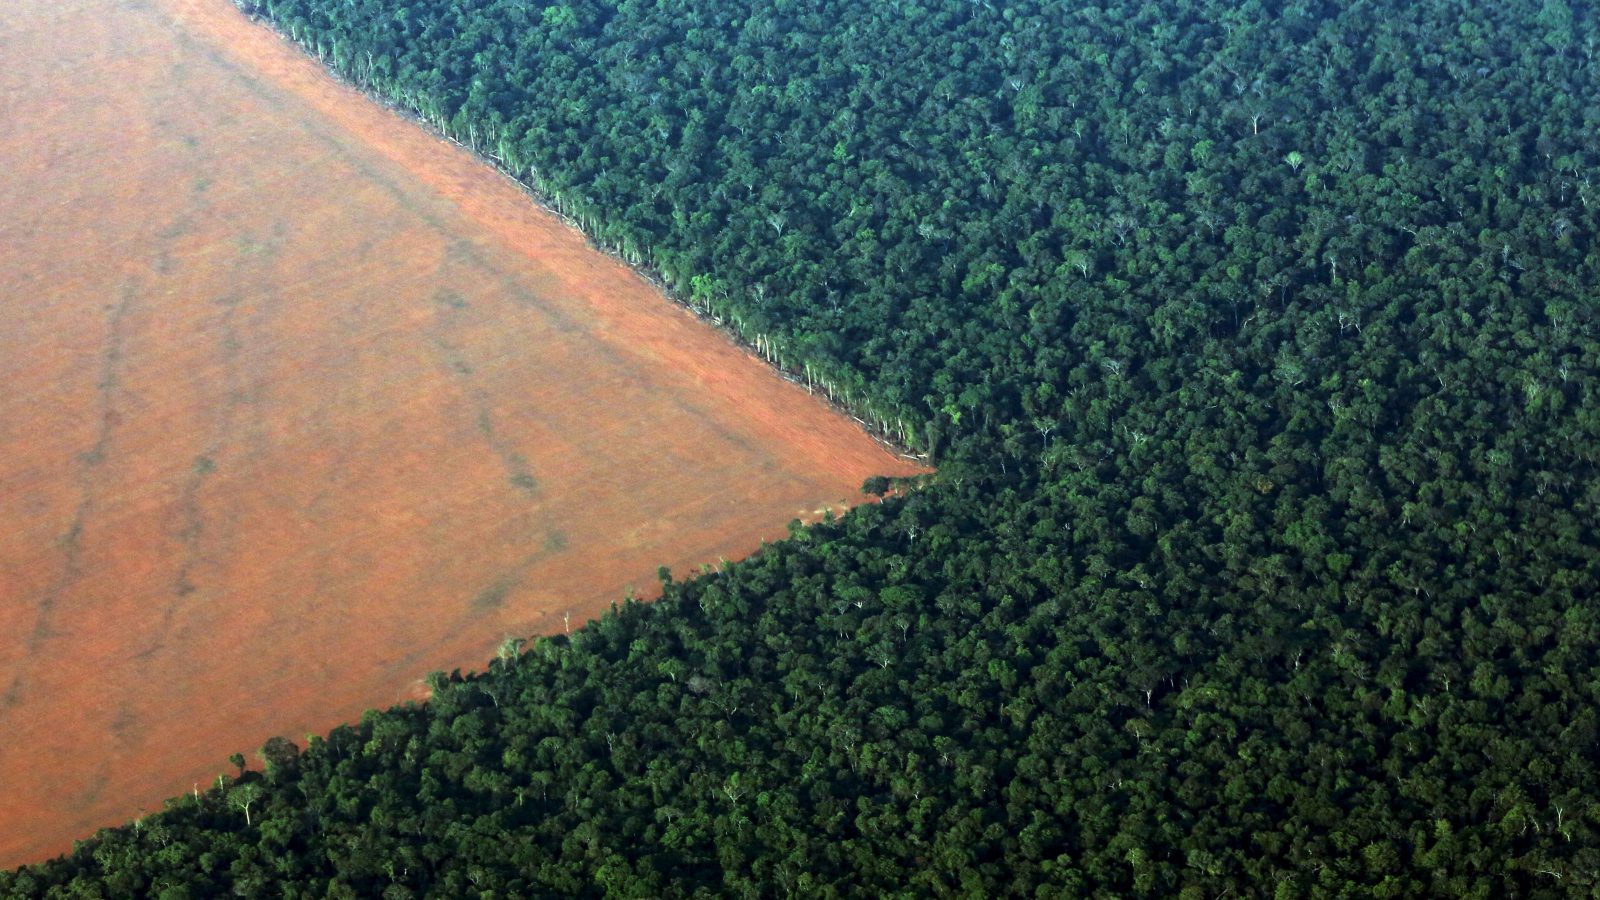 The Amazon rain forest (R), bordered by deforested land prepared for the planting of soybeans, is pictured in this aerial photo taken over Mato Grosso state in western Brazil, October 4, 2015. Brazil will produce a record 97.8 million tonnes of soybeans in 2015/16, a 3.2 percent rise compared to 2014/15, but much of this additional volume will be stored in the country, with little impact on export volumes, estimated on Monday the Brazilian Association of Vegetable Oil Industries (ABIOVE).  Picture taken October 4, 2015.  REUTERS/Paulo Whitaker      TPX IMAGES OF THE DAY      - RTS35W9